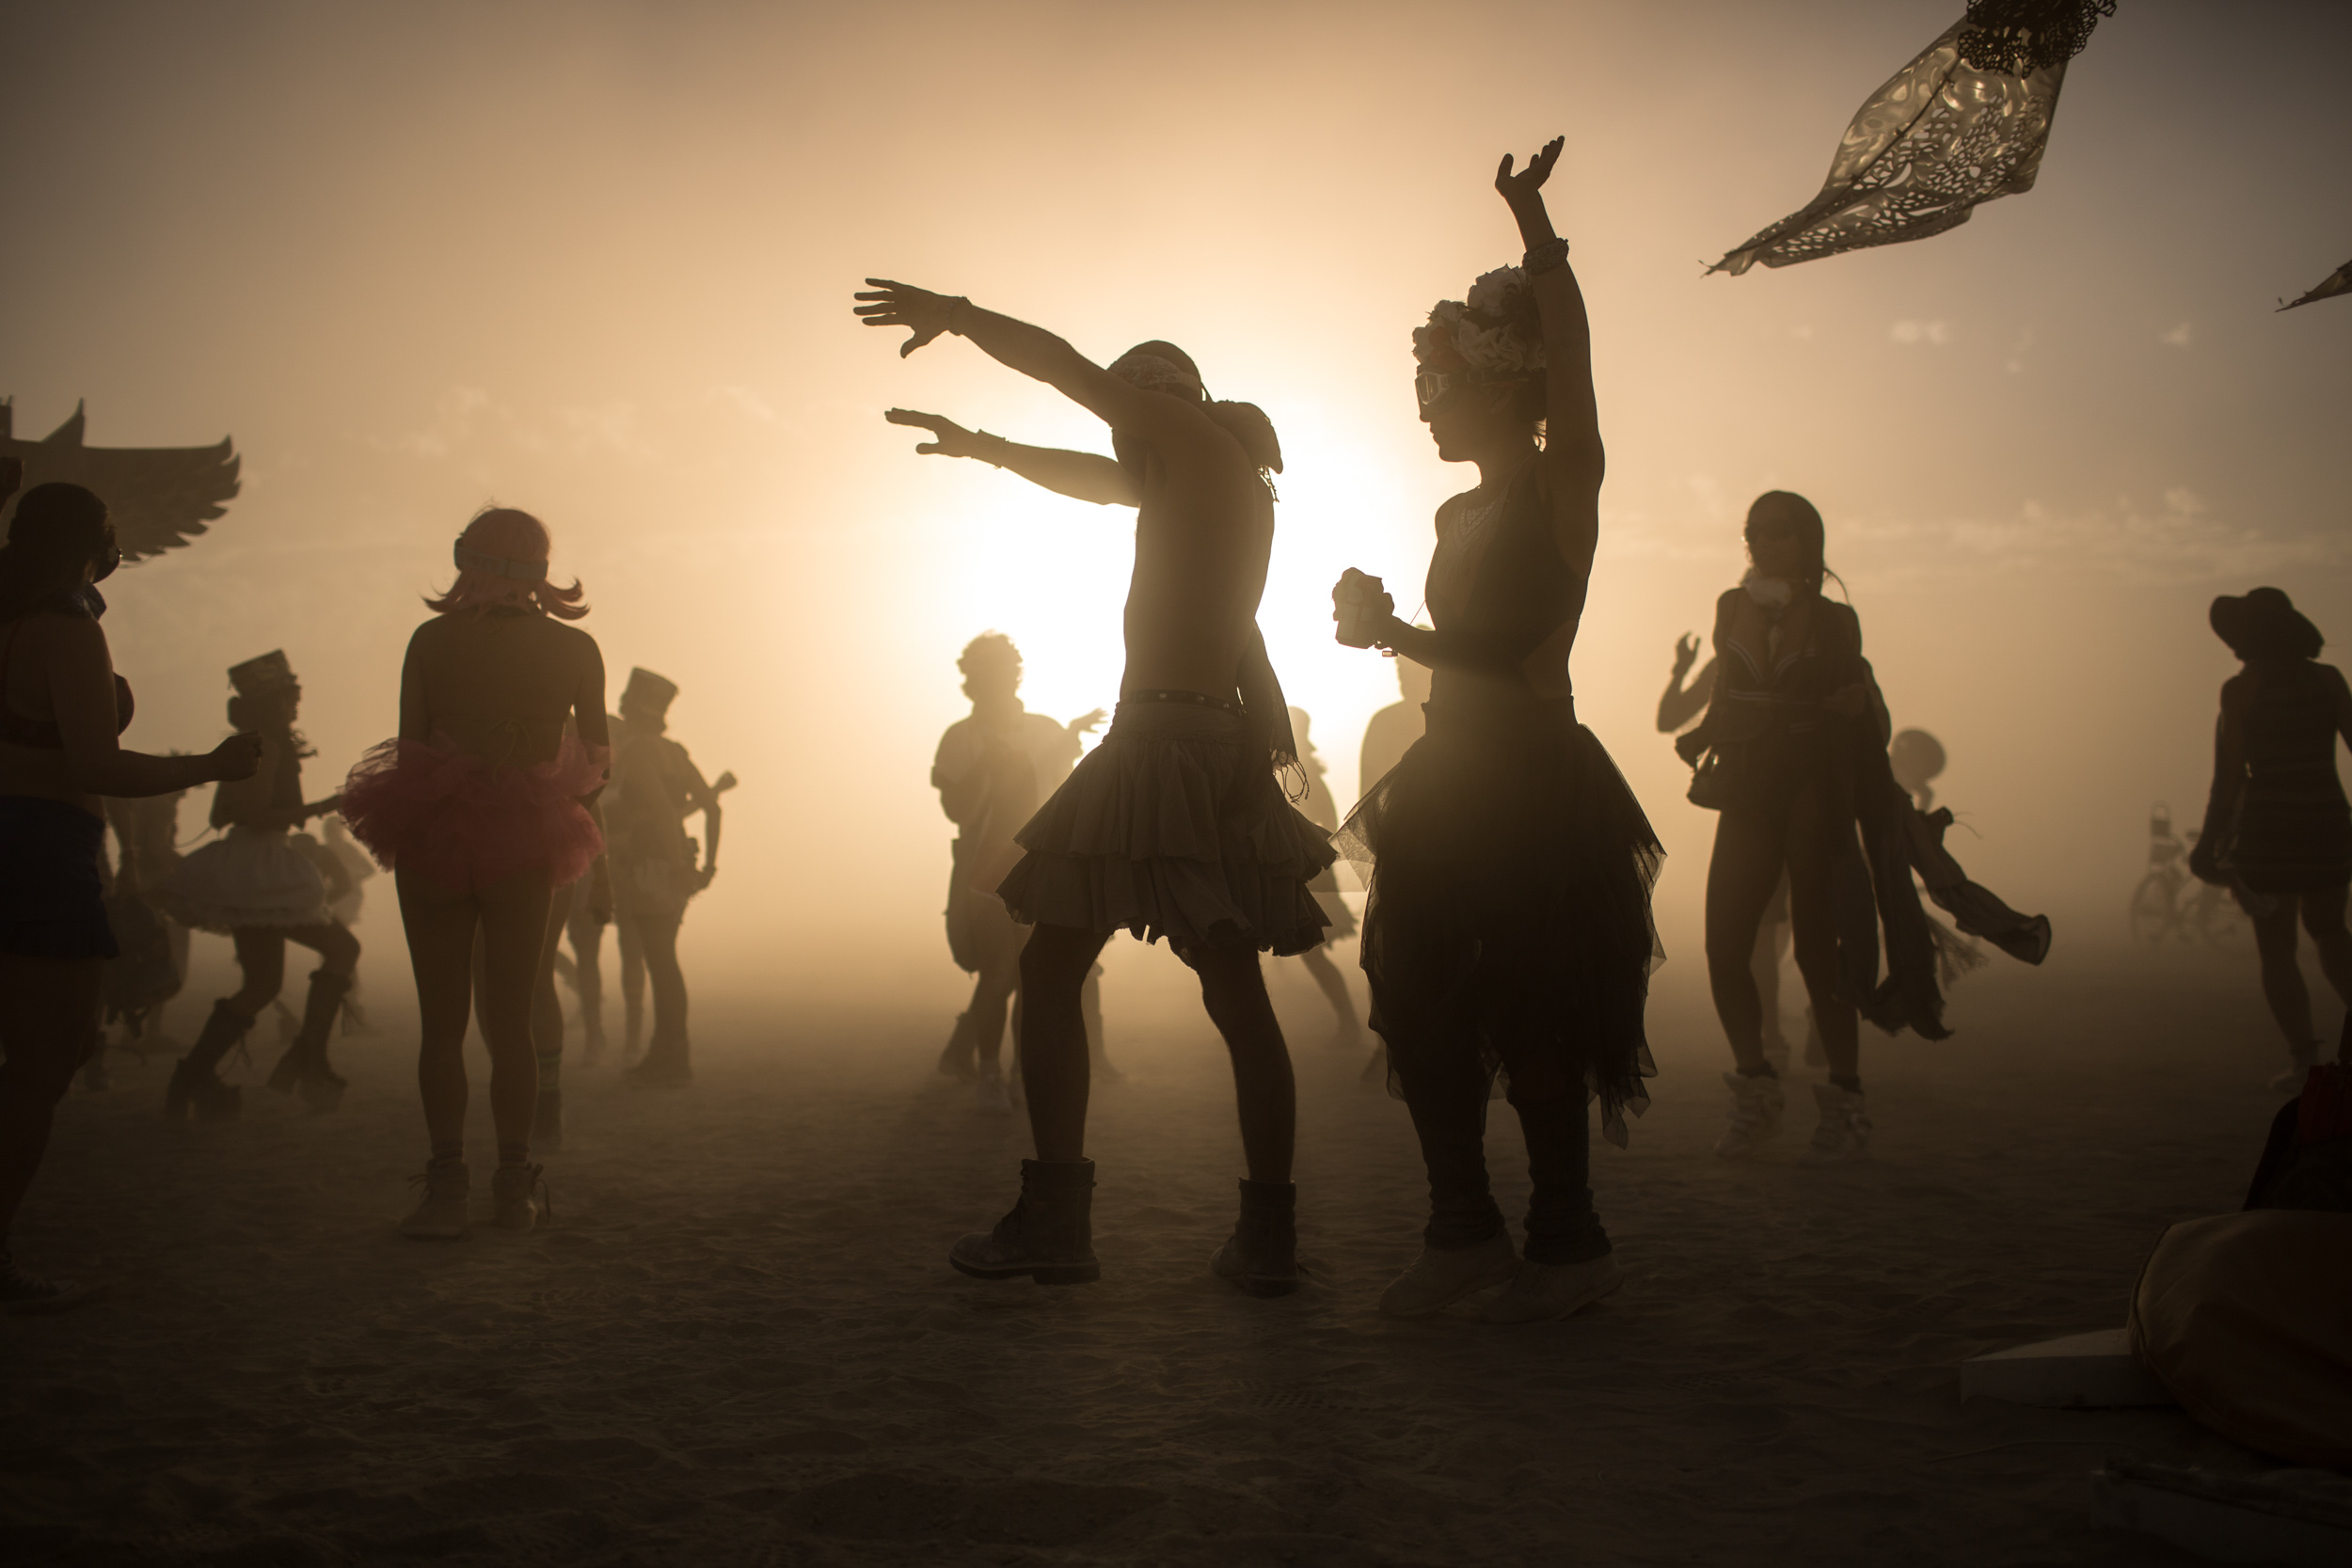 20160830_BurningMan16_7U6A7094